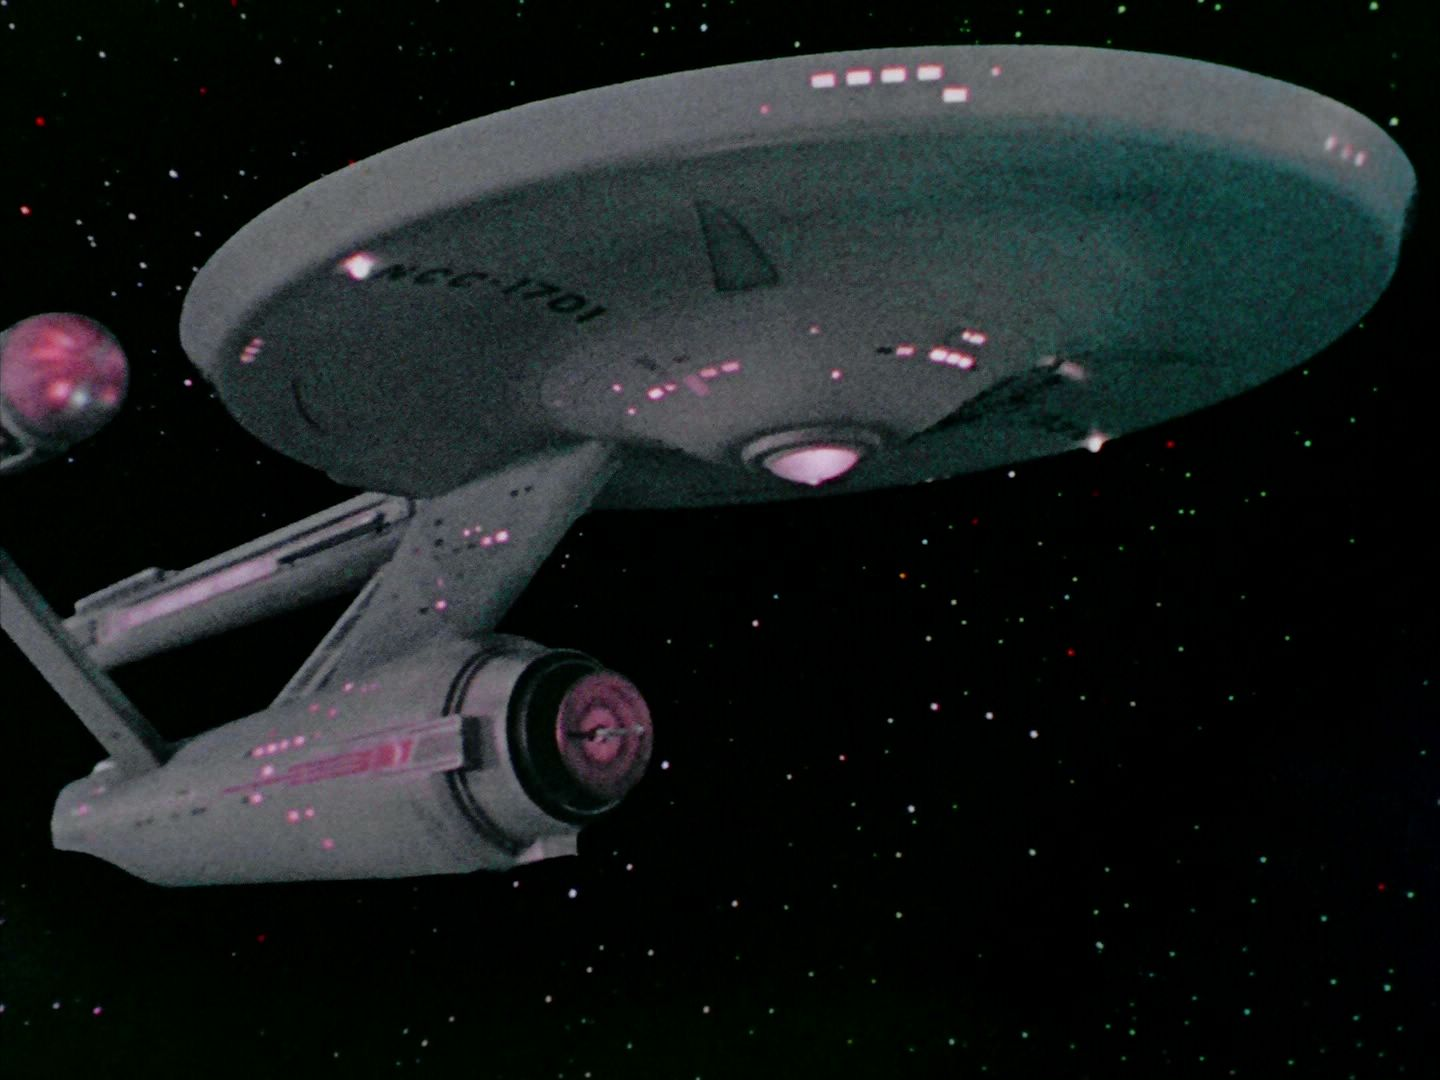 star trek wallpaper collections